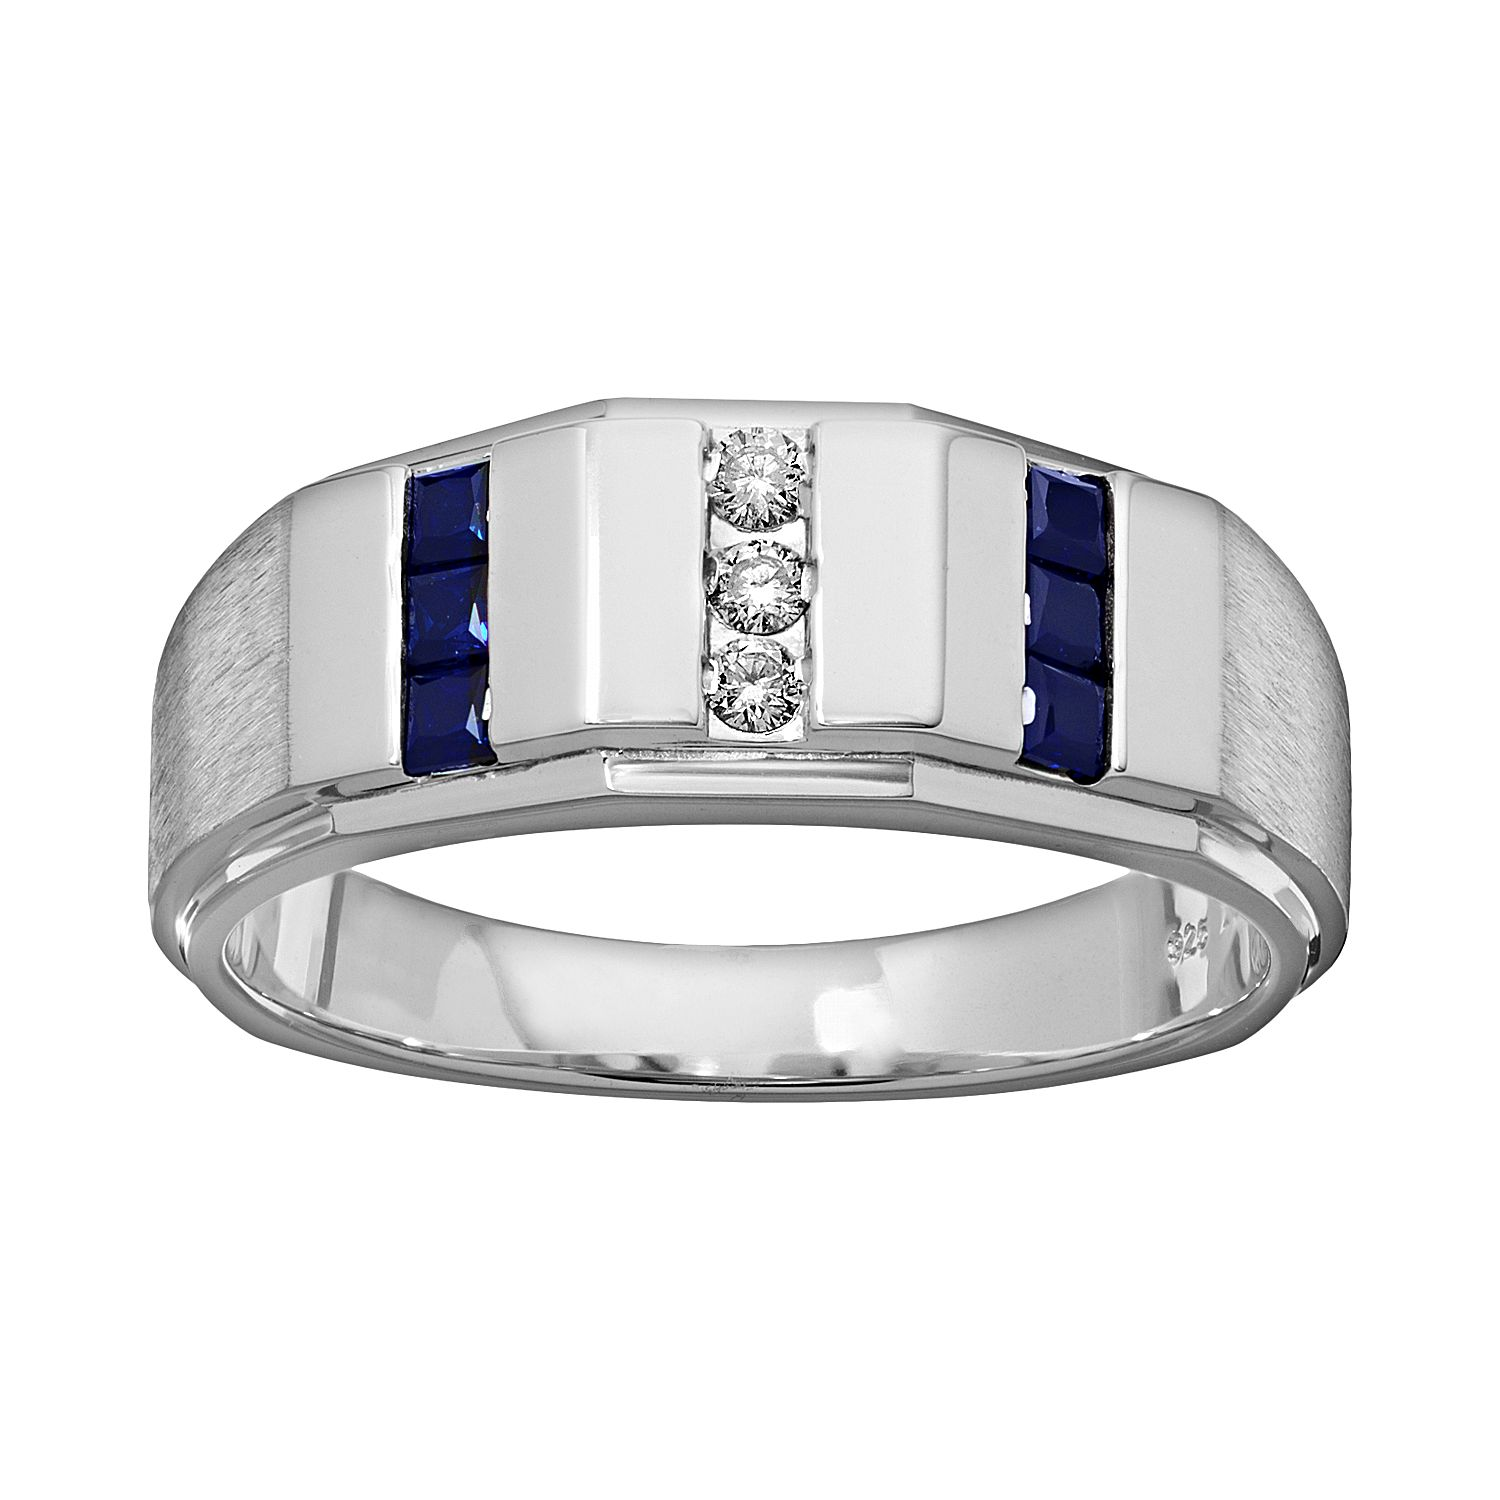 Lab Created Sapphire U0026 1/10 Carat T.W. Diamond Sterling Silver Wedding Ring